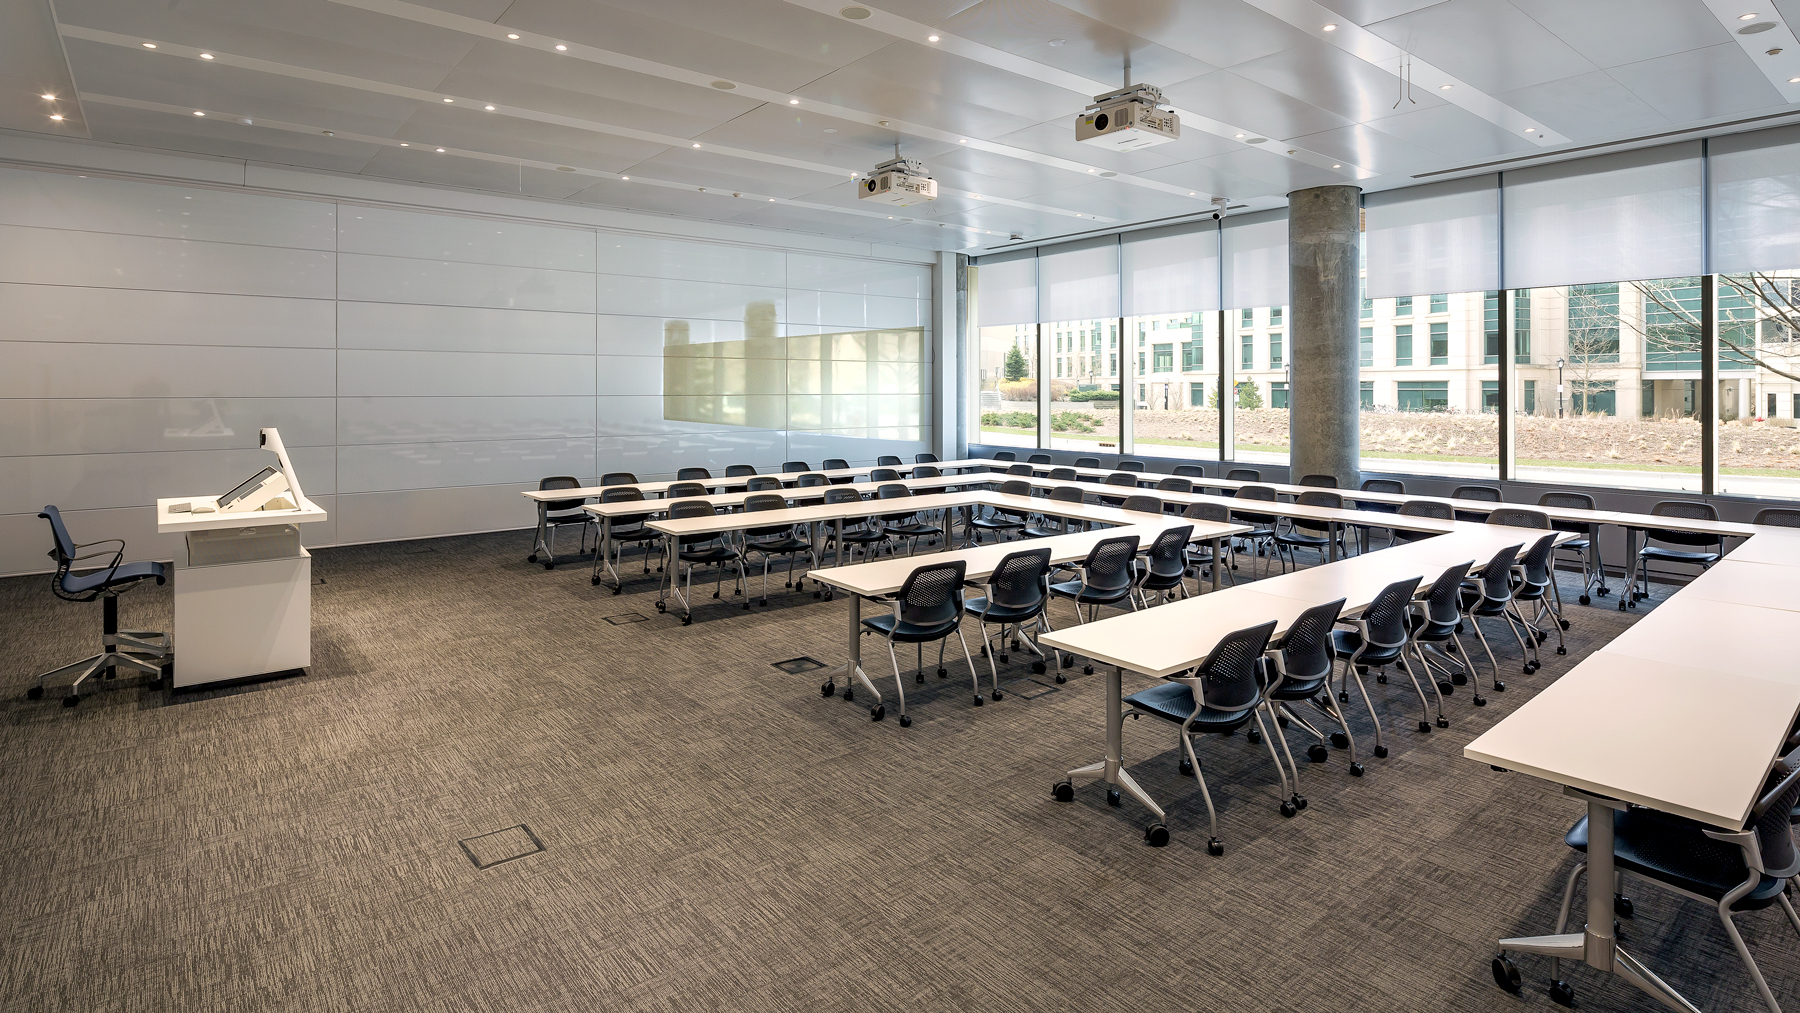 Room 1420 and 1430 Design Wing and Conference Center